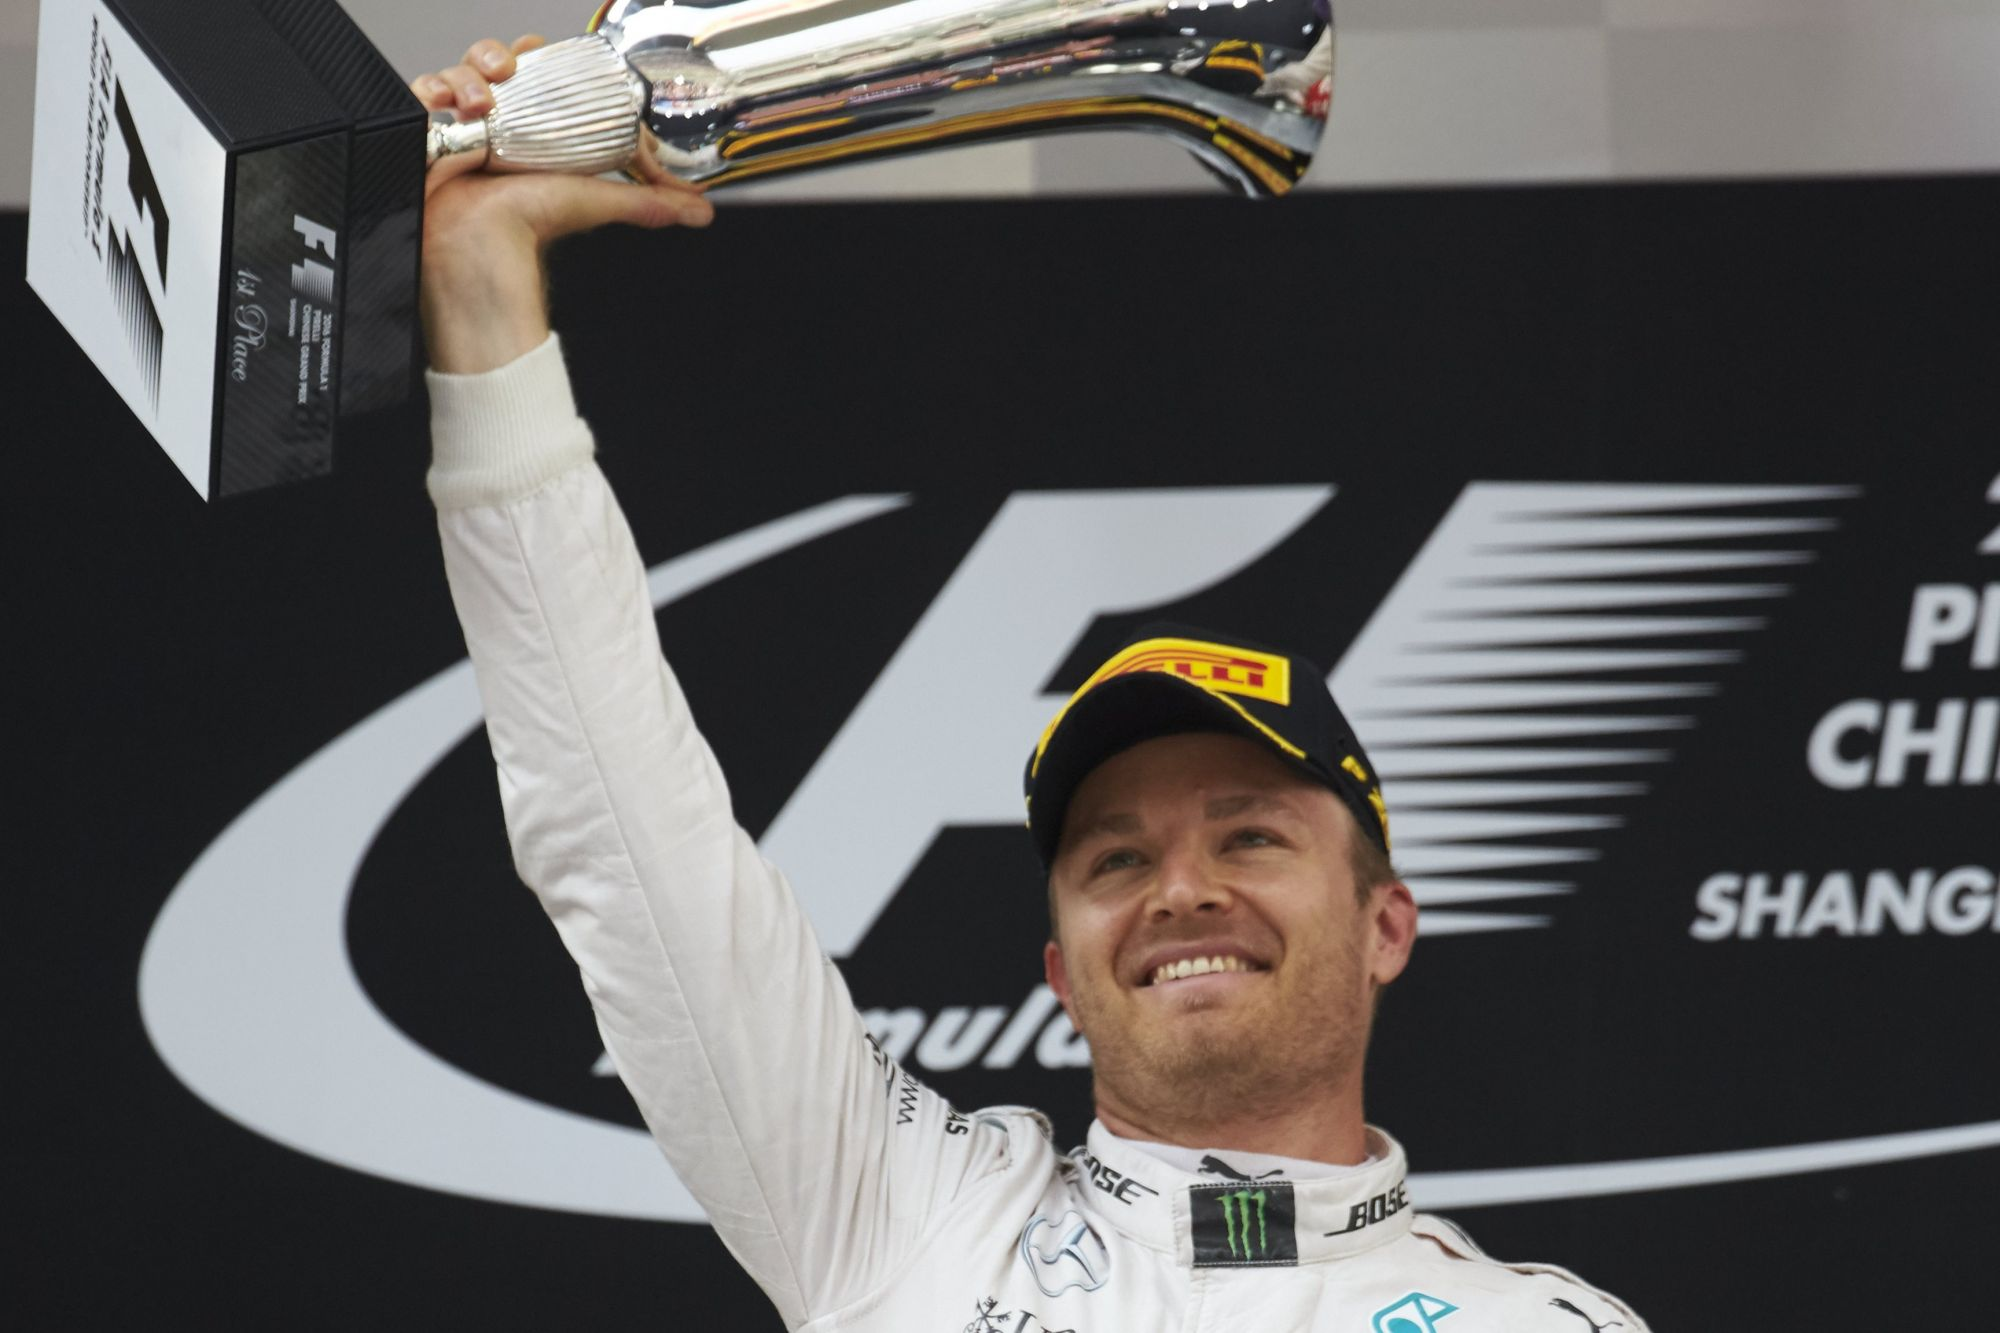 Nico Rosberg Mercedes W07 Hybrid China GP F1 2016 celebrates his 17th career victory at podium